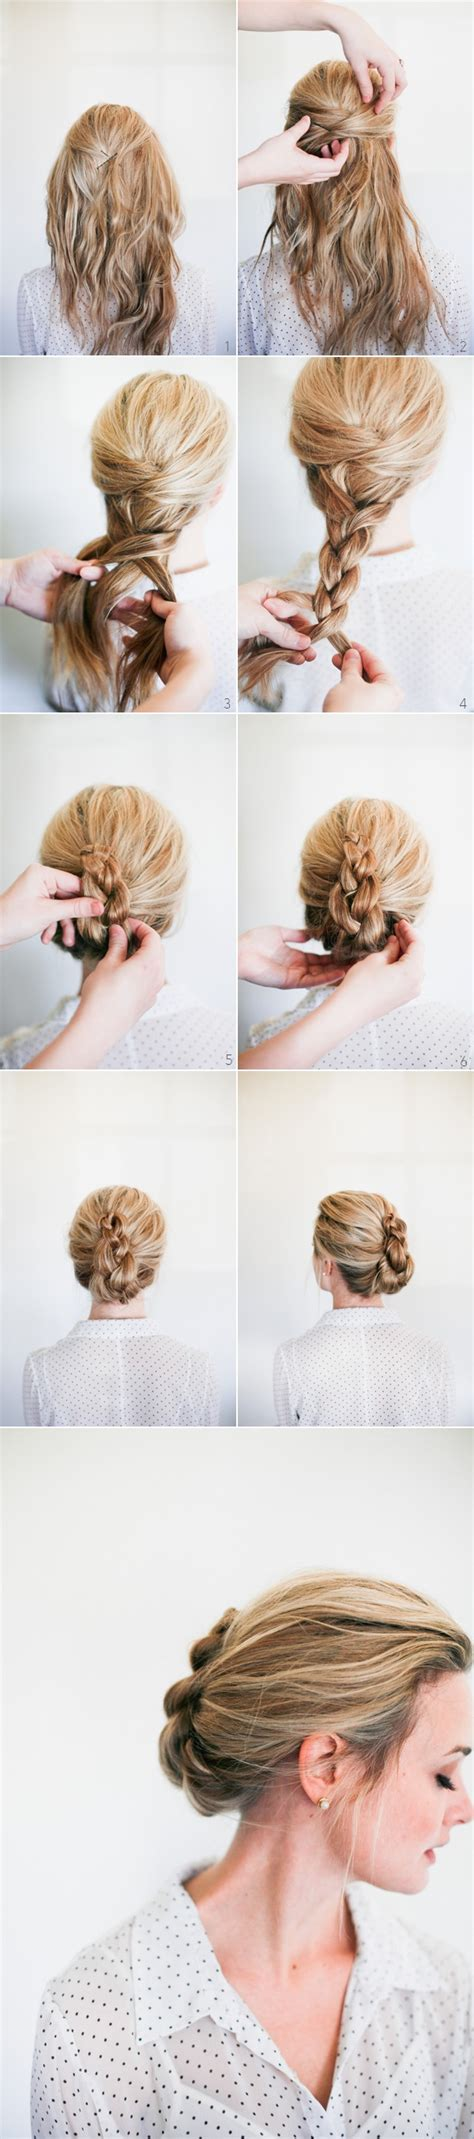 Wedding Hairstyles Tutorials by Braid Hair Tutorials 12 Ways To Braid Your Hair